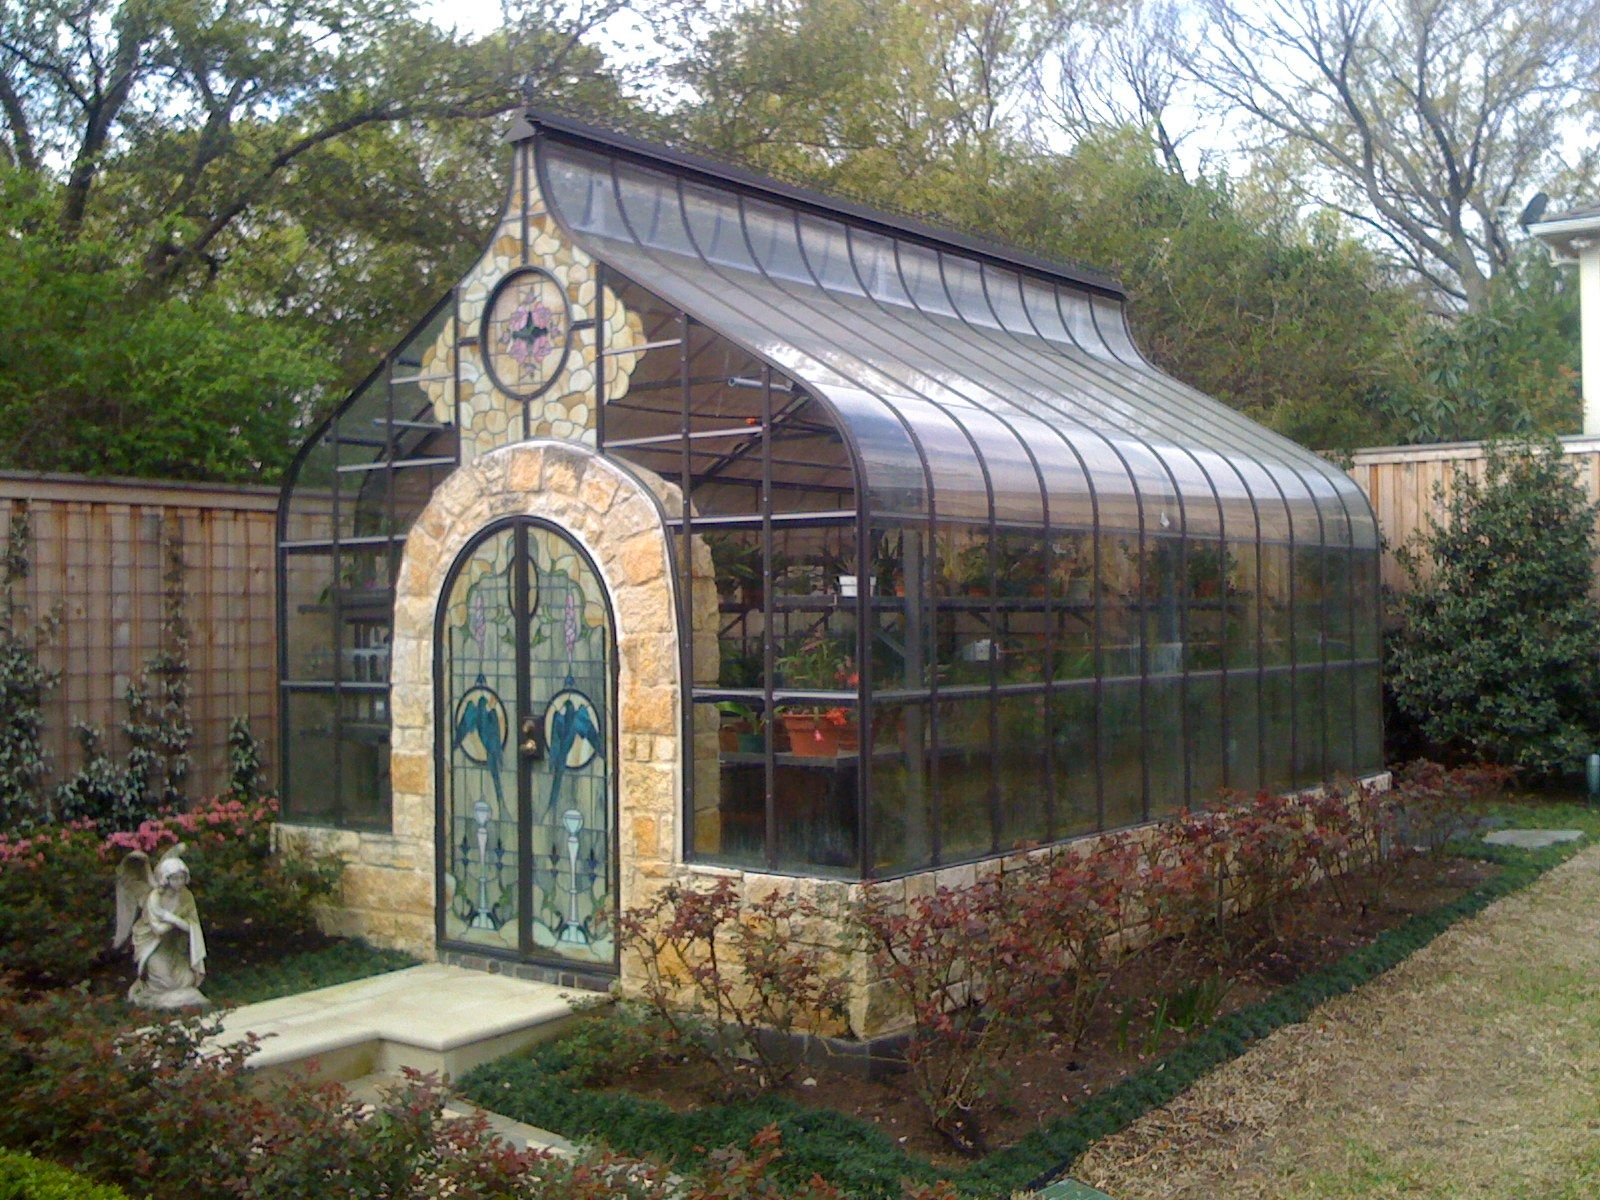 Greenhouse conservatory stained glass doors oh my for Gothic greenhouse plans